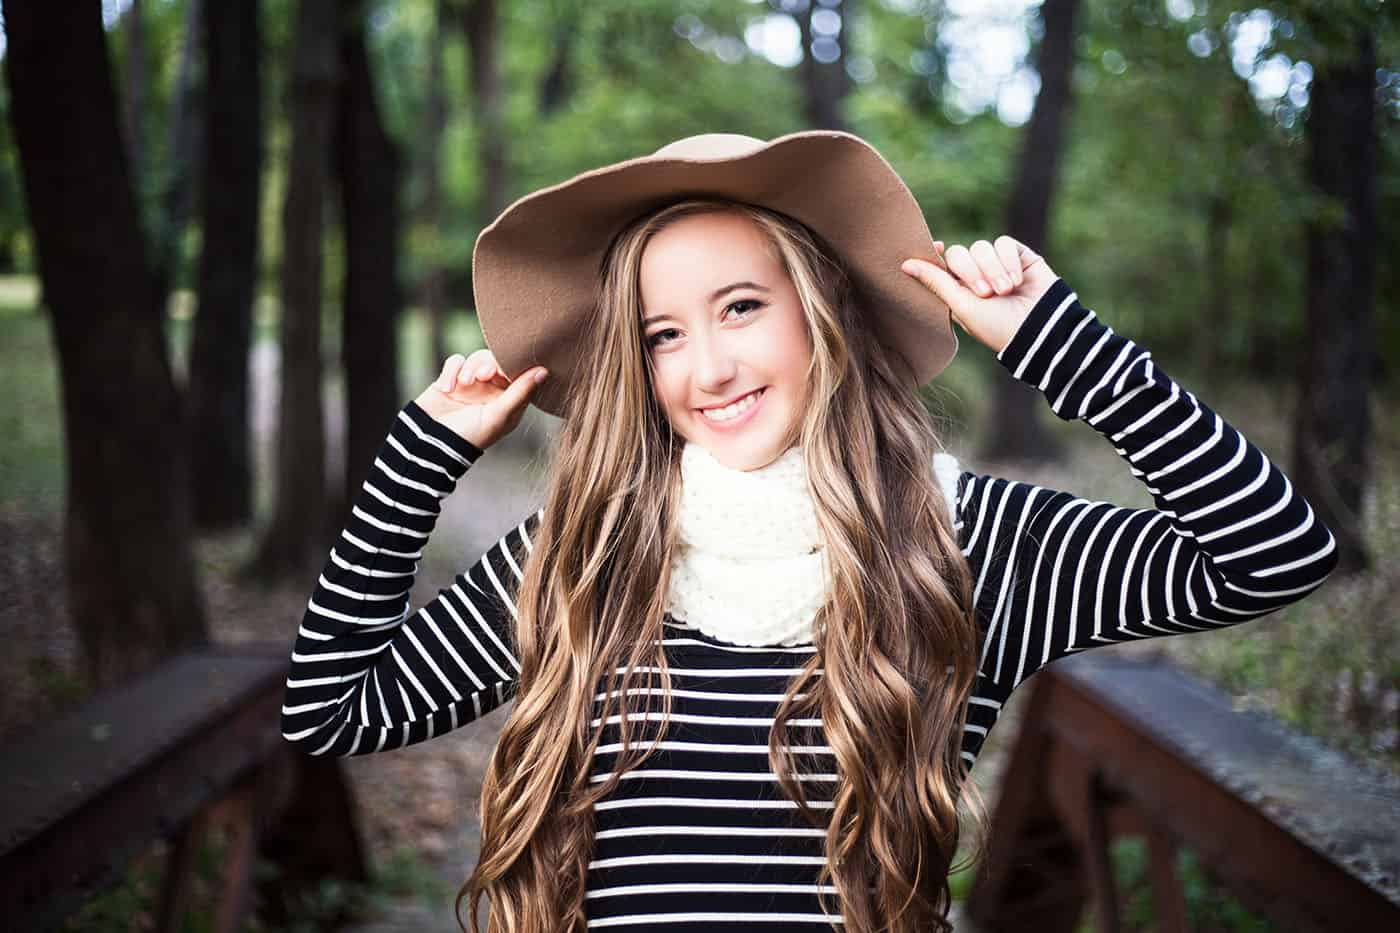 beautiful blonde smiling teenage girl in a floppy hat by Heather Yeager